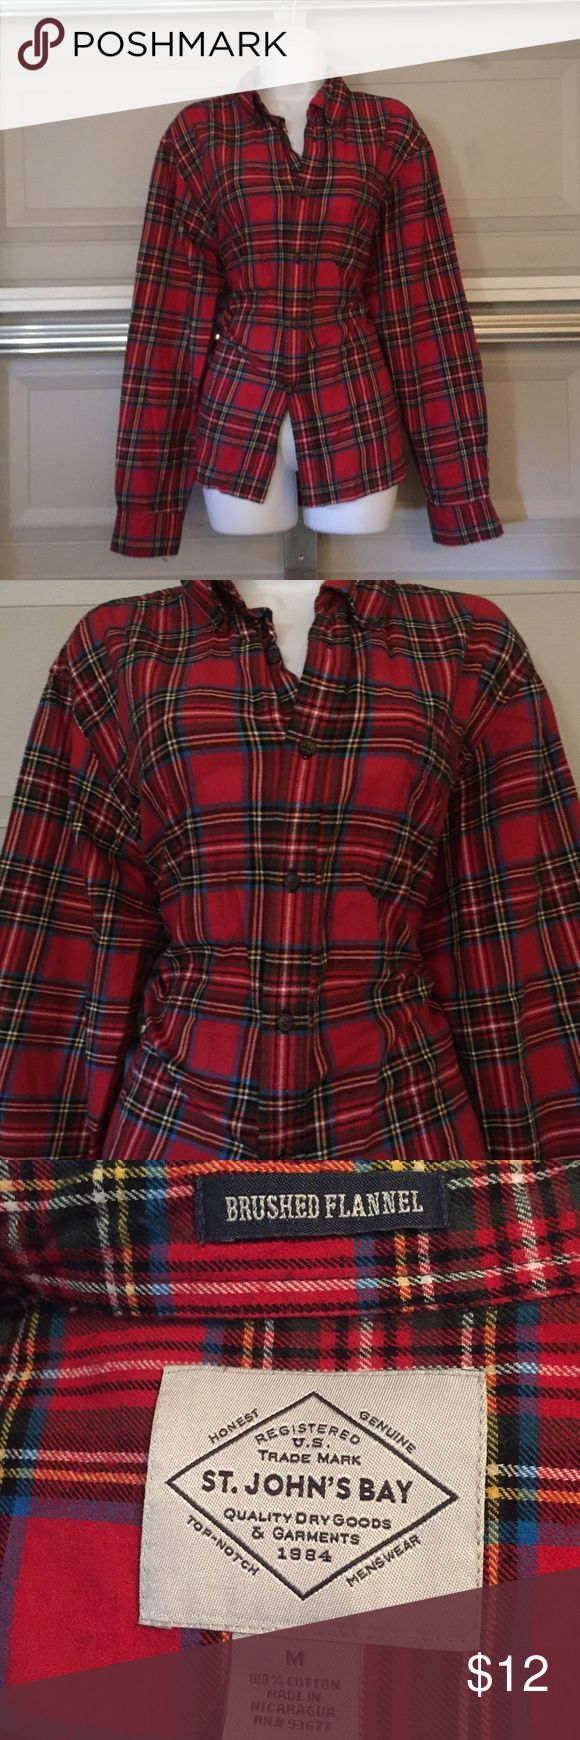 Red Ladies Flannel Shirt Very retro flannel shirt. Gently worn, no stains, rips, or tears. Long sleeve shirt, button down. Great with jeans! Tops Button Down Shirts